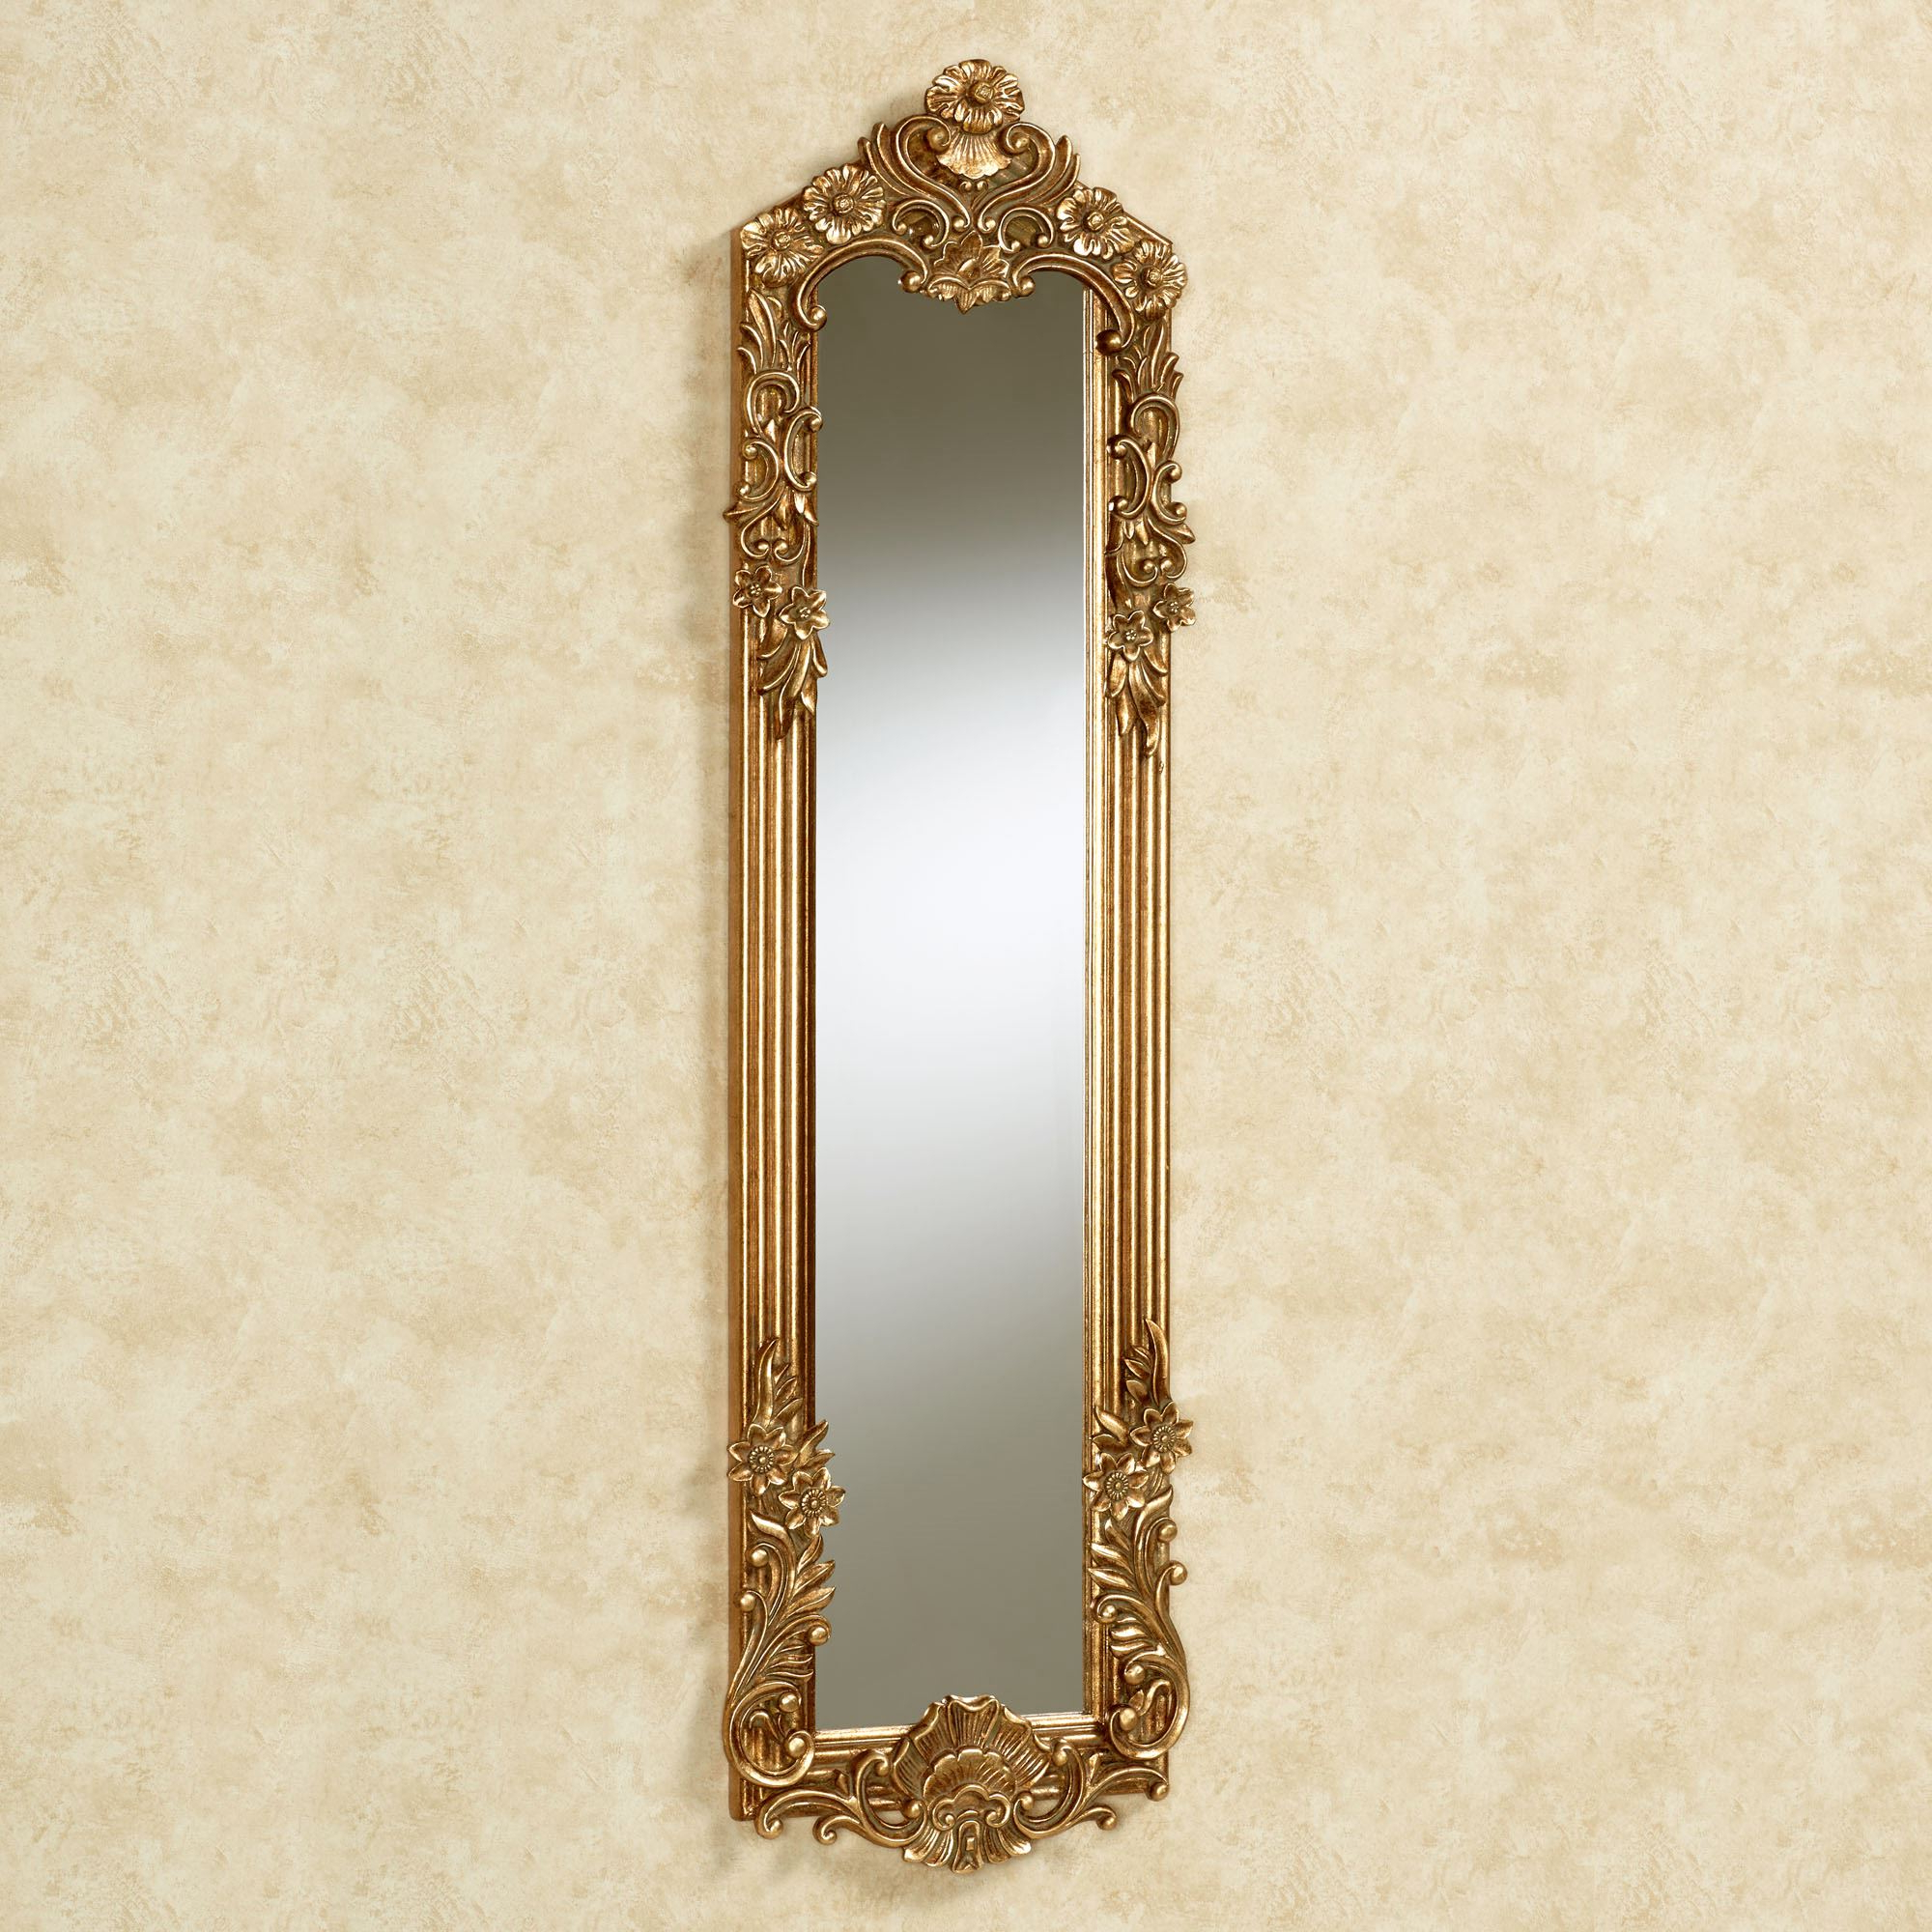 Gadsden Dark Gold Small Floral Wall Mirror Panel For Trendy Small Wall Mirrors (View 14 of 20)